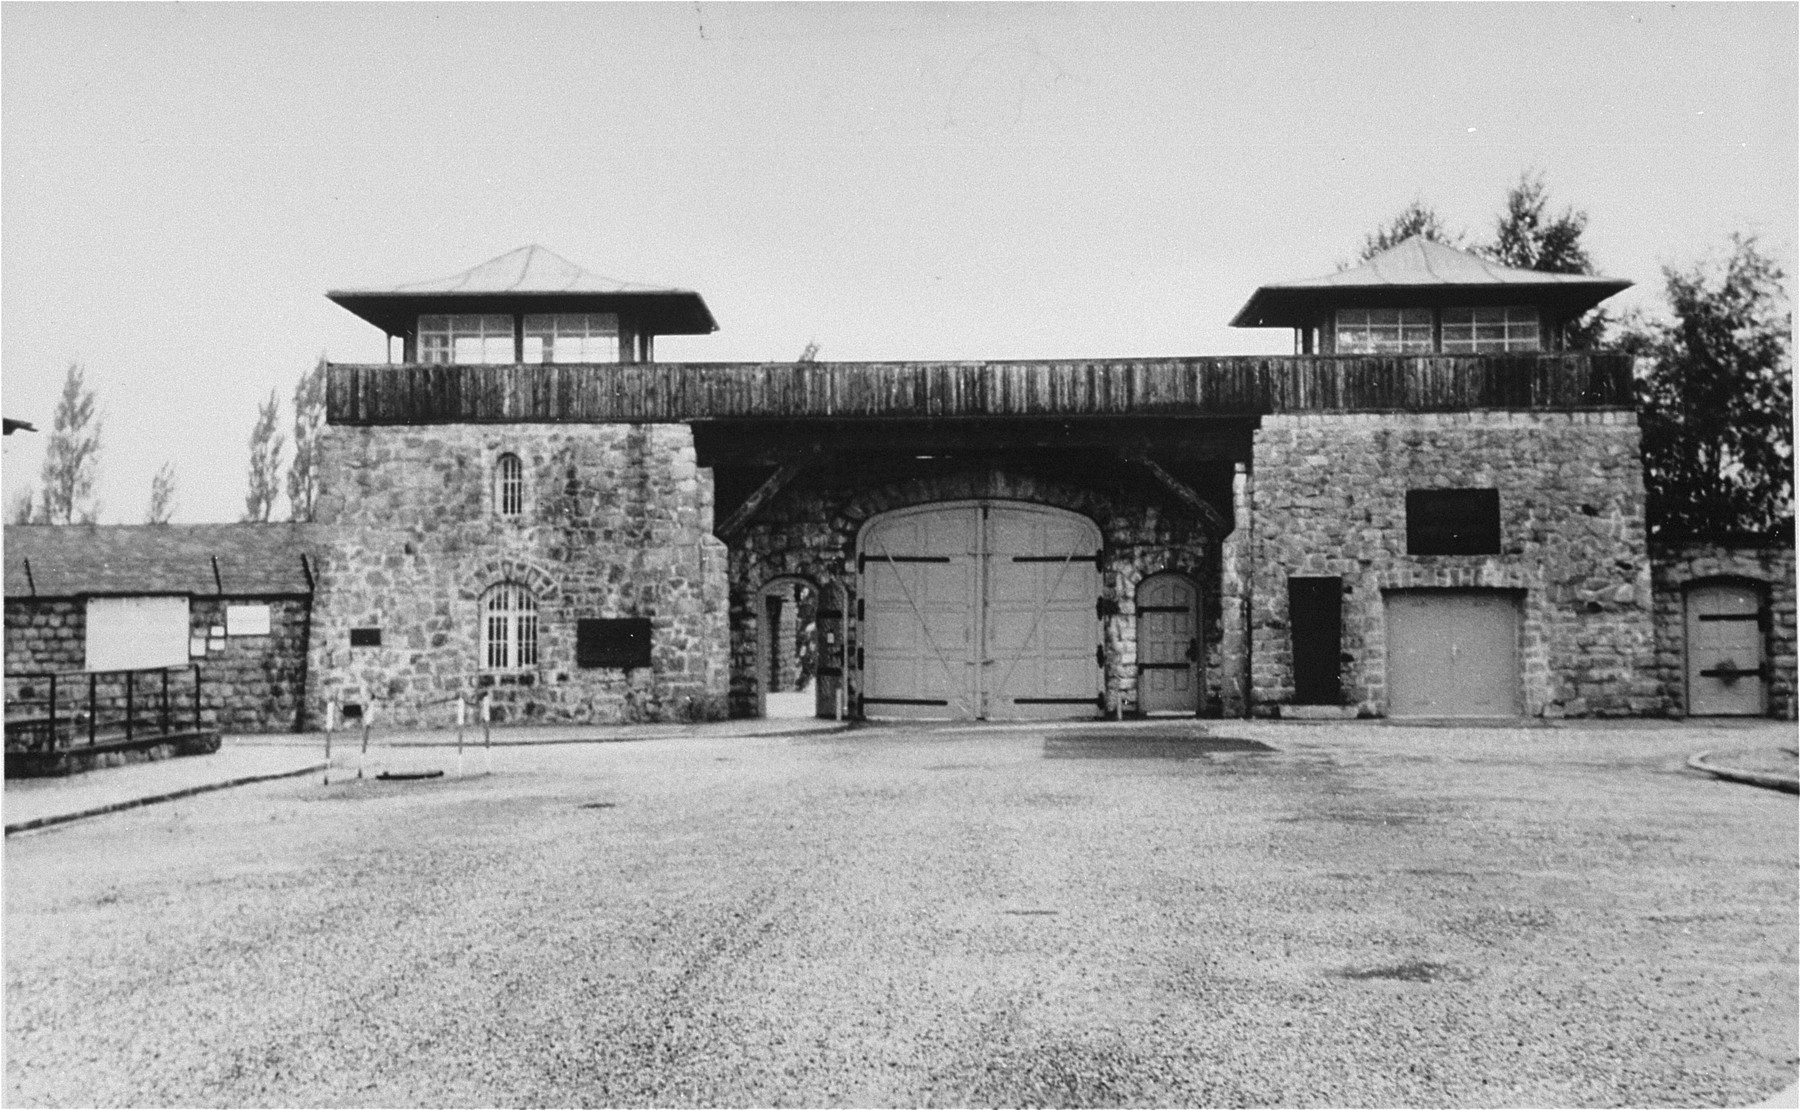 View of the main gate to the Mauthausen concentration camp.